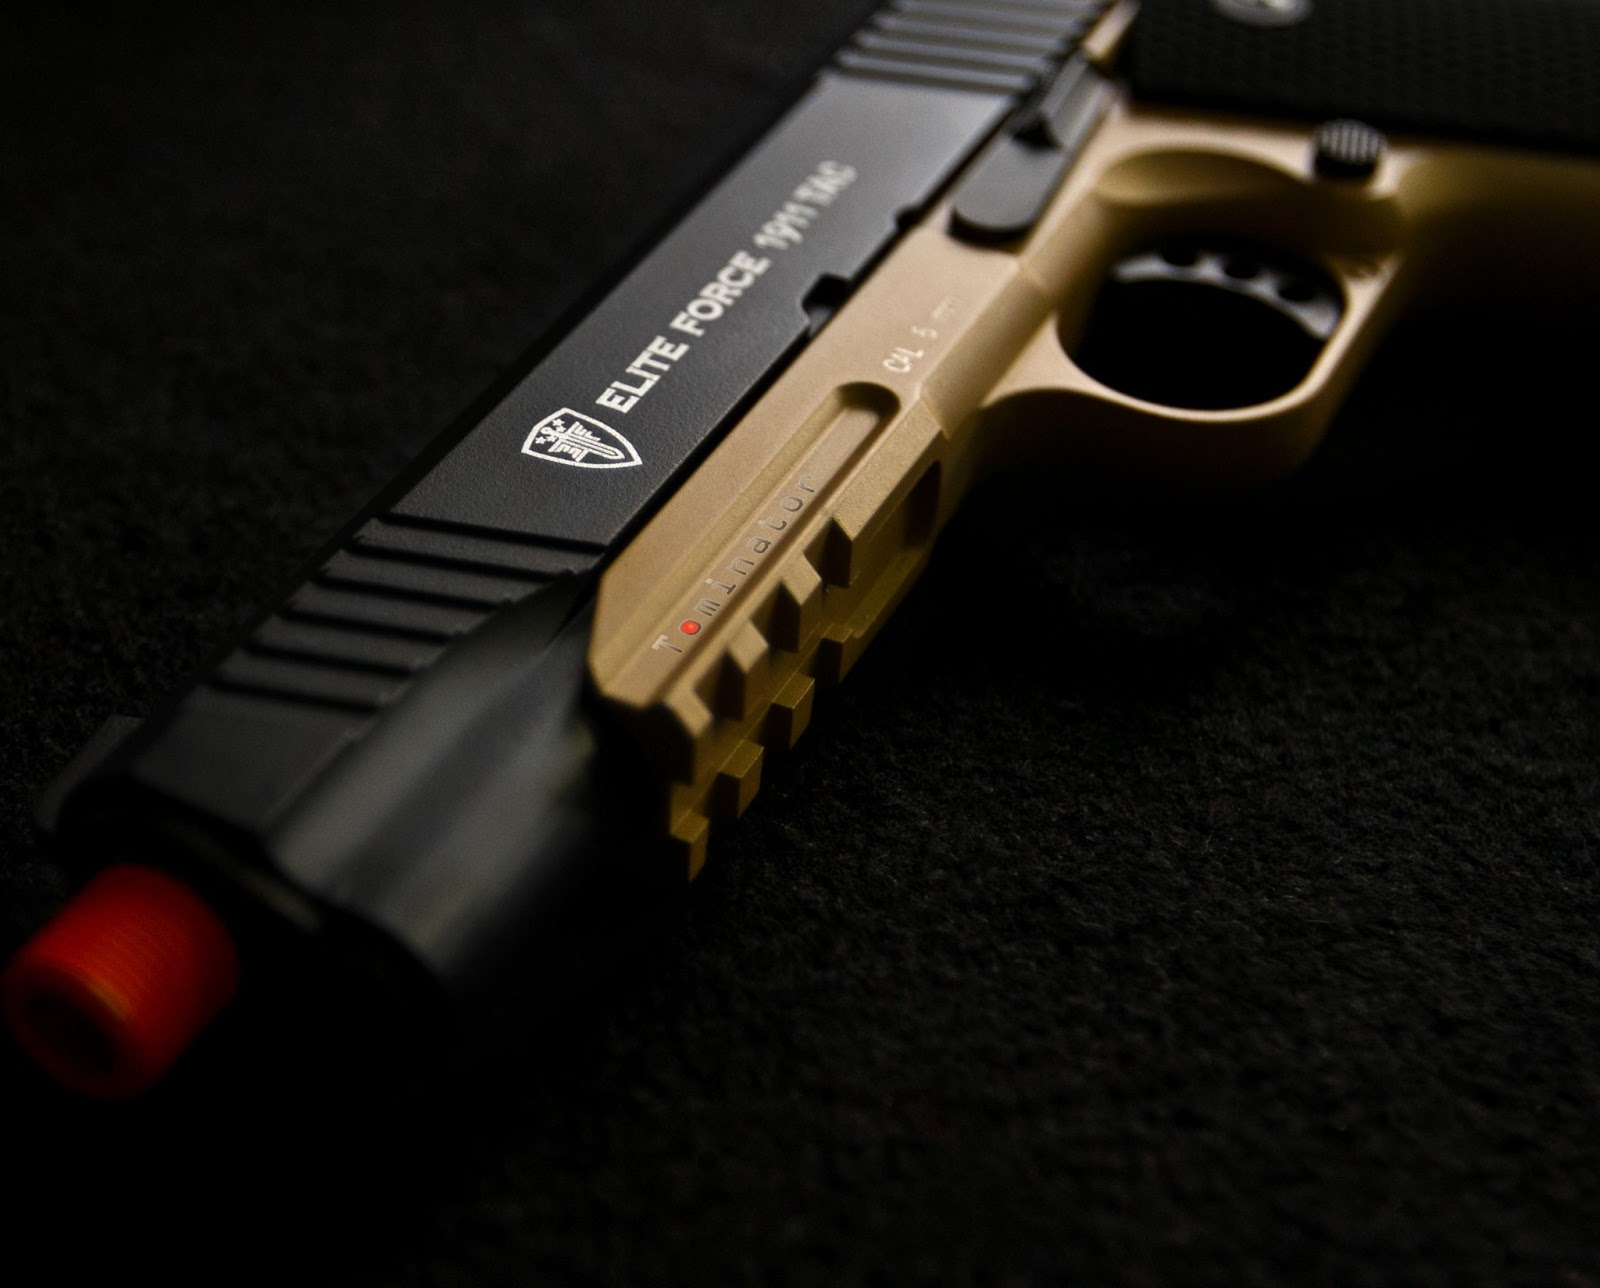 elite force 1911, airsoft guns, elite force airsoft, airsoft co2 guns, co2 airsoft guns,